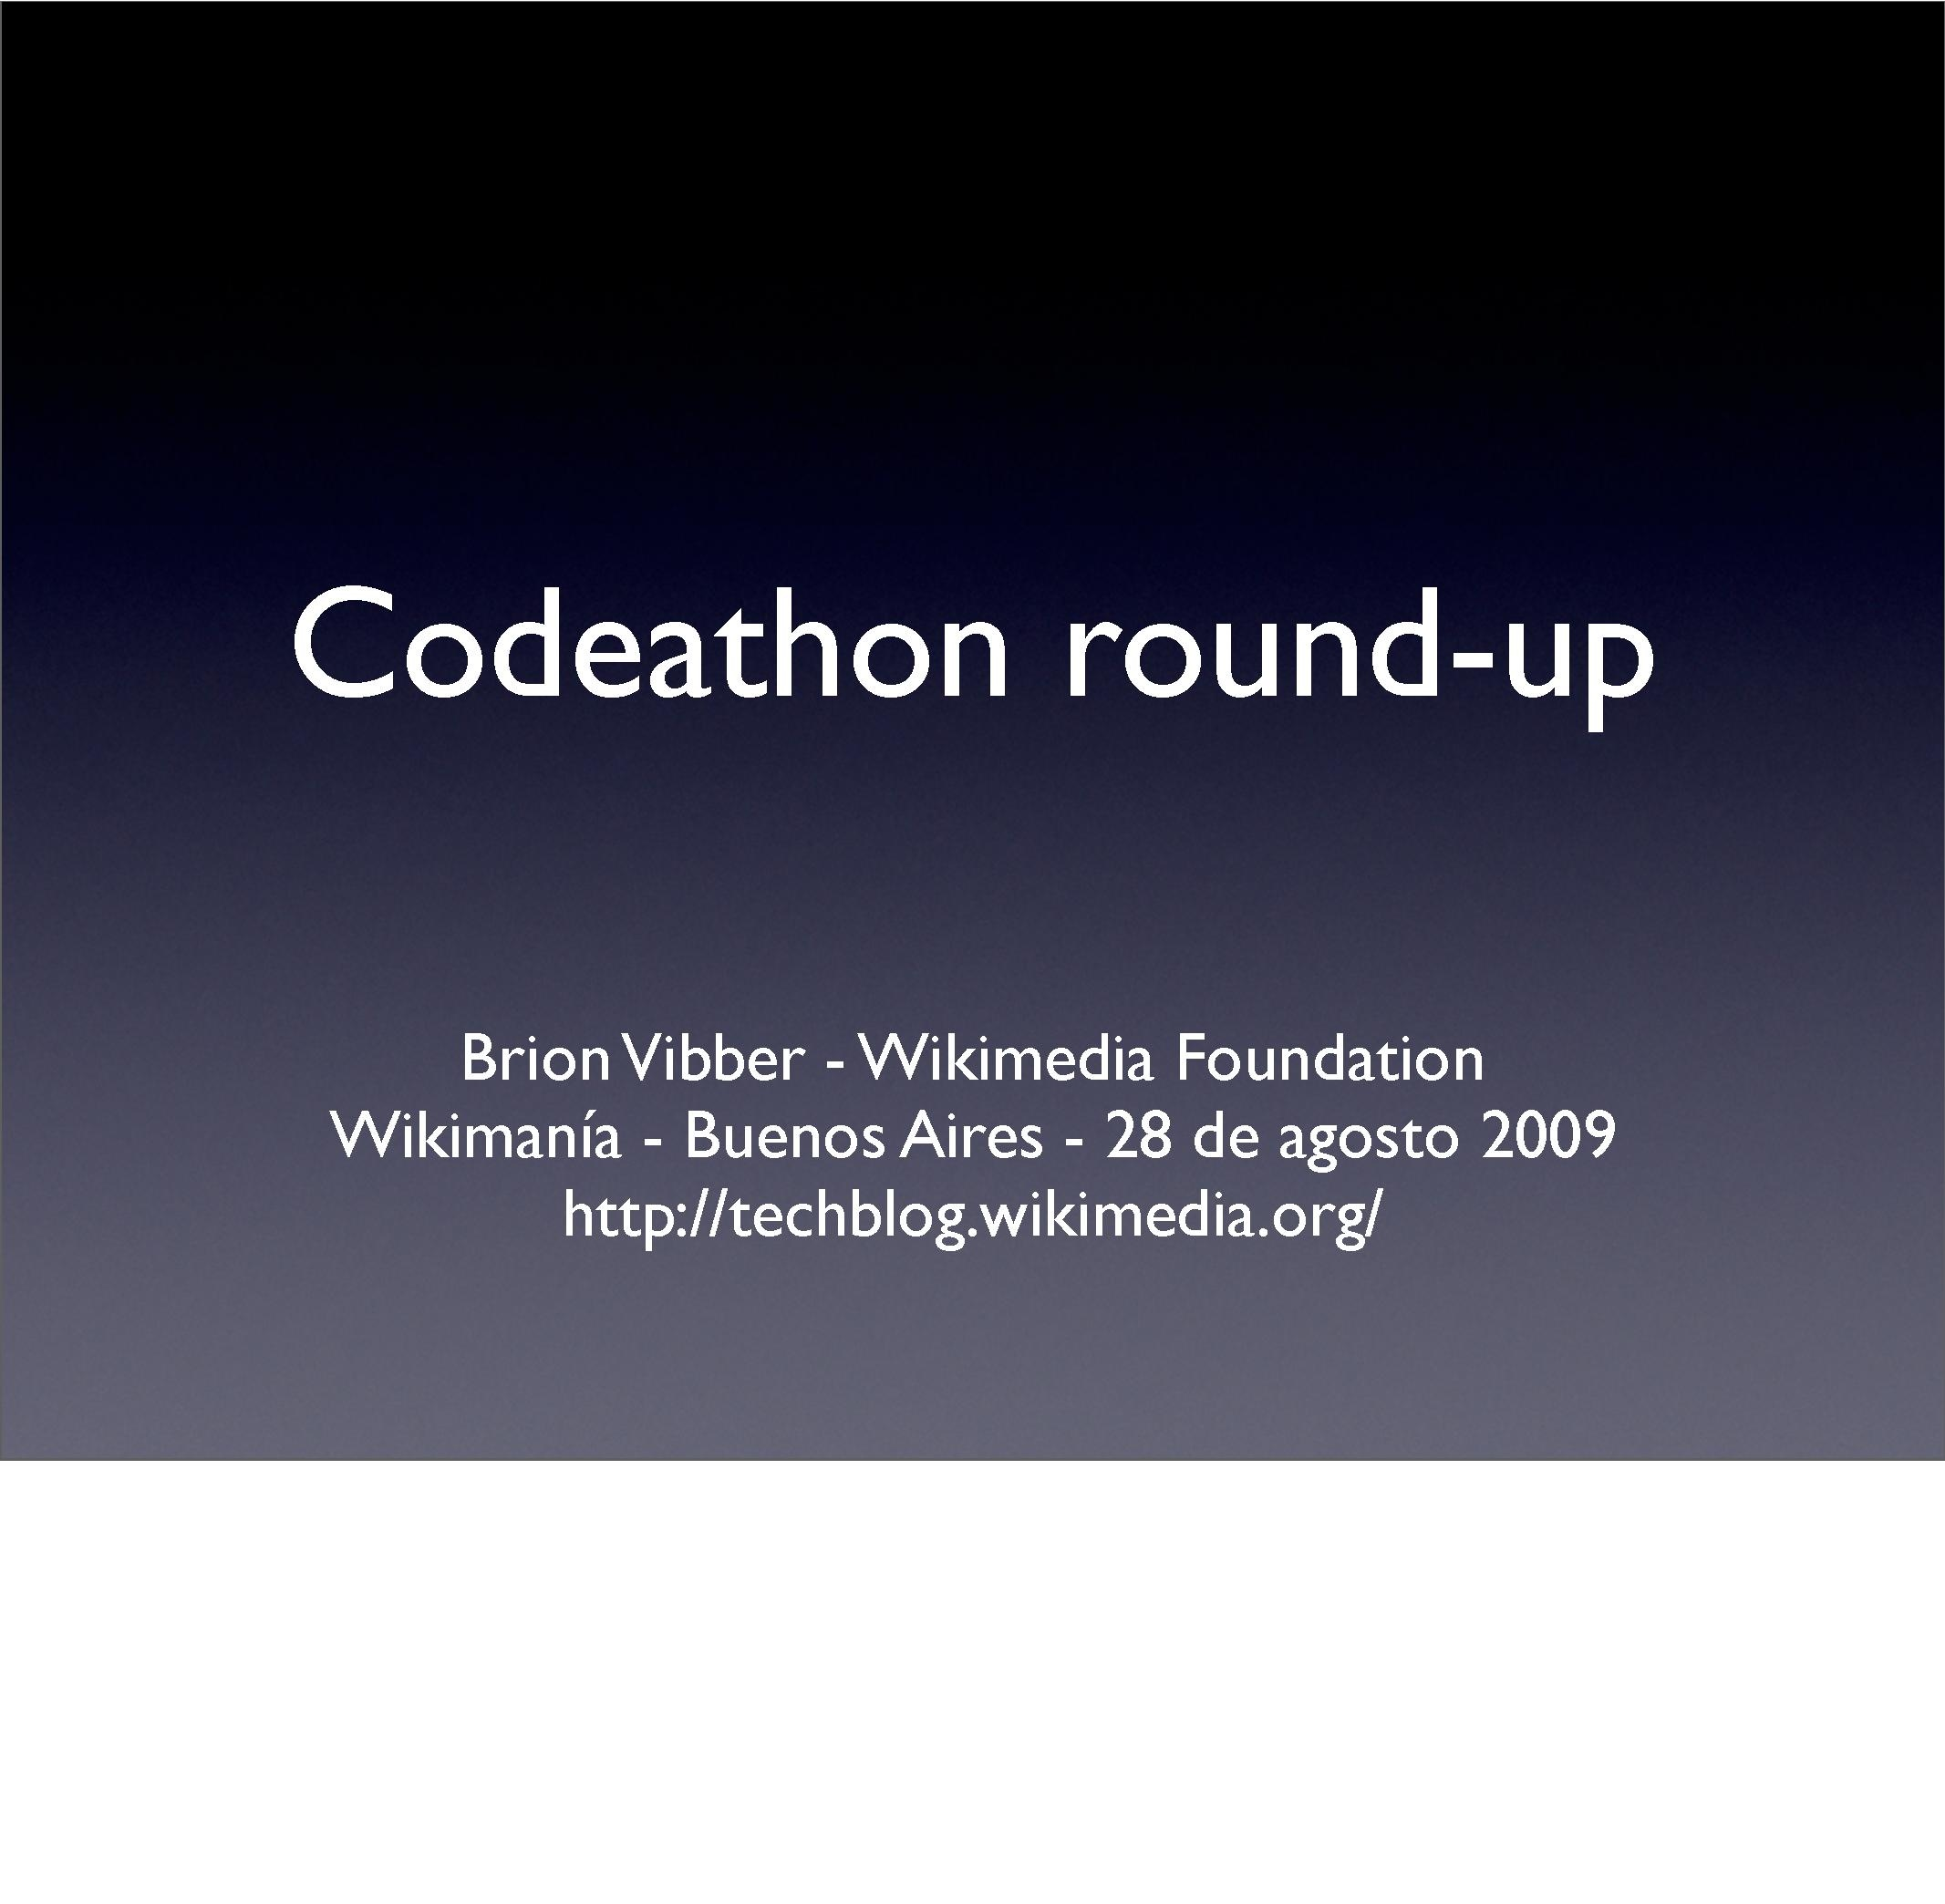 Brion Vibber - 2009 Wikimania Codeathon roundup.pdf